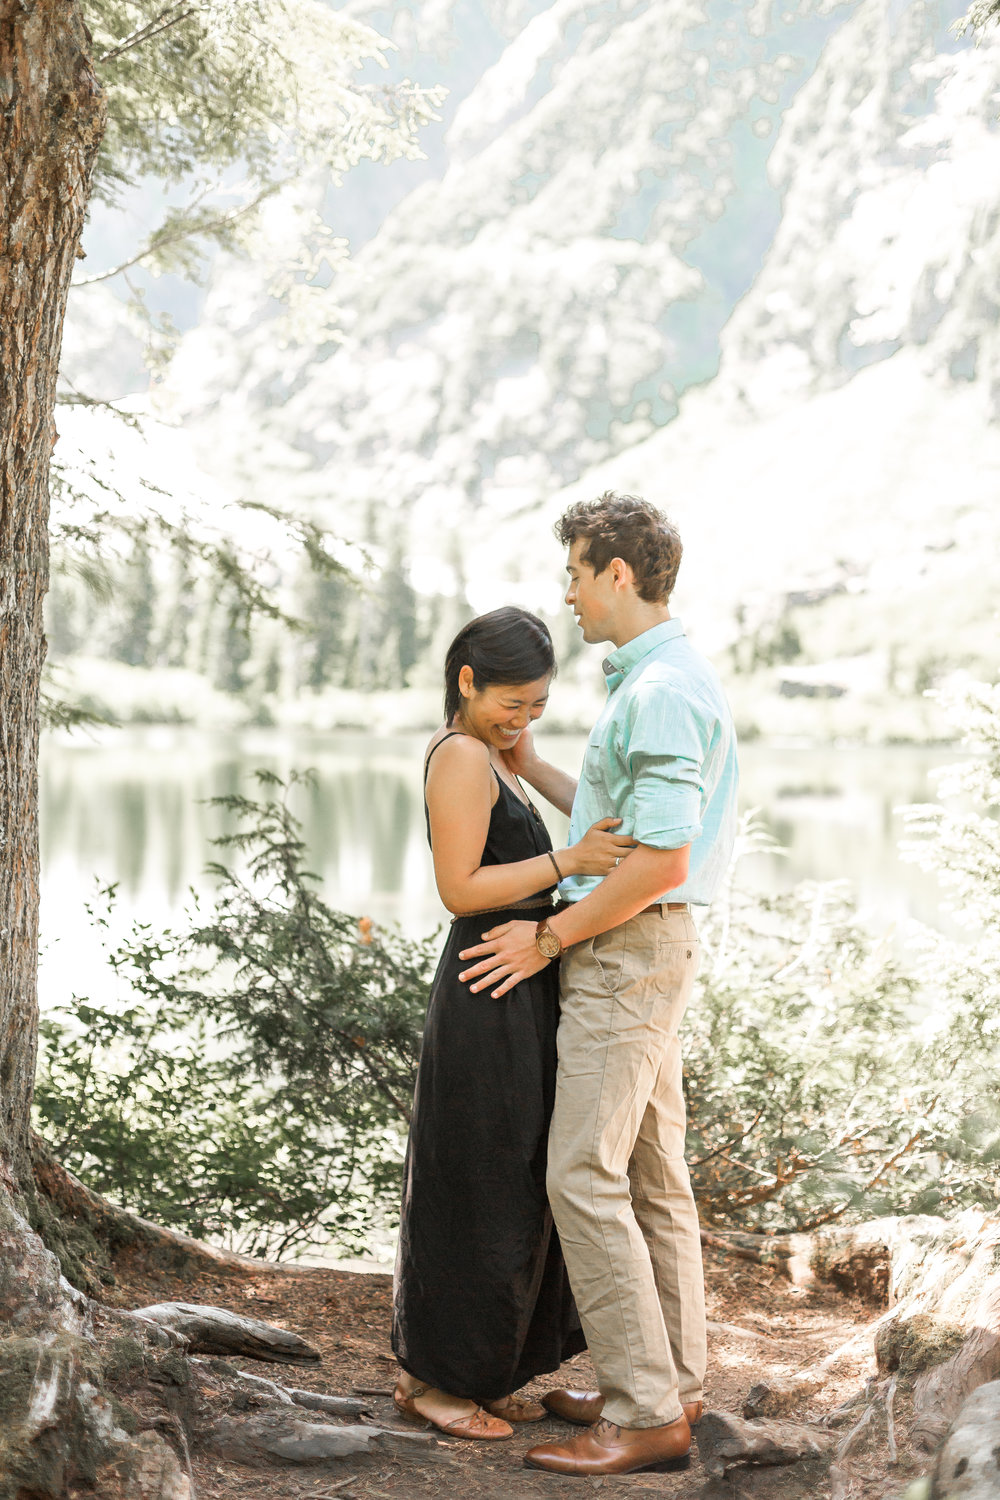 nicole-daacke-photography-hiking-engagement-session-in-snoqualmie-pass-washington-wedding-photographer-seattle-elopement-photography-adventurous-hiking-photos-heather-lake-washington-trails-5.jpg